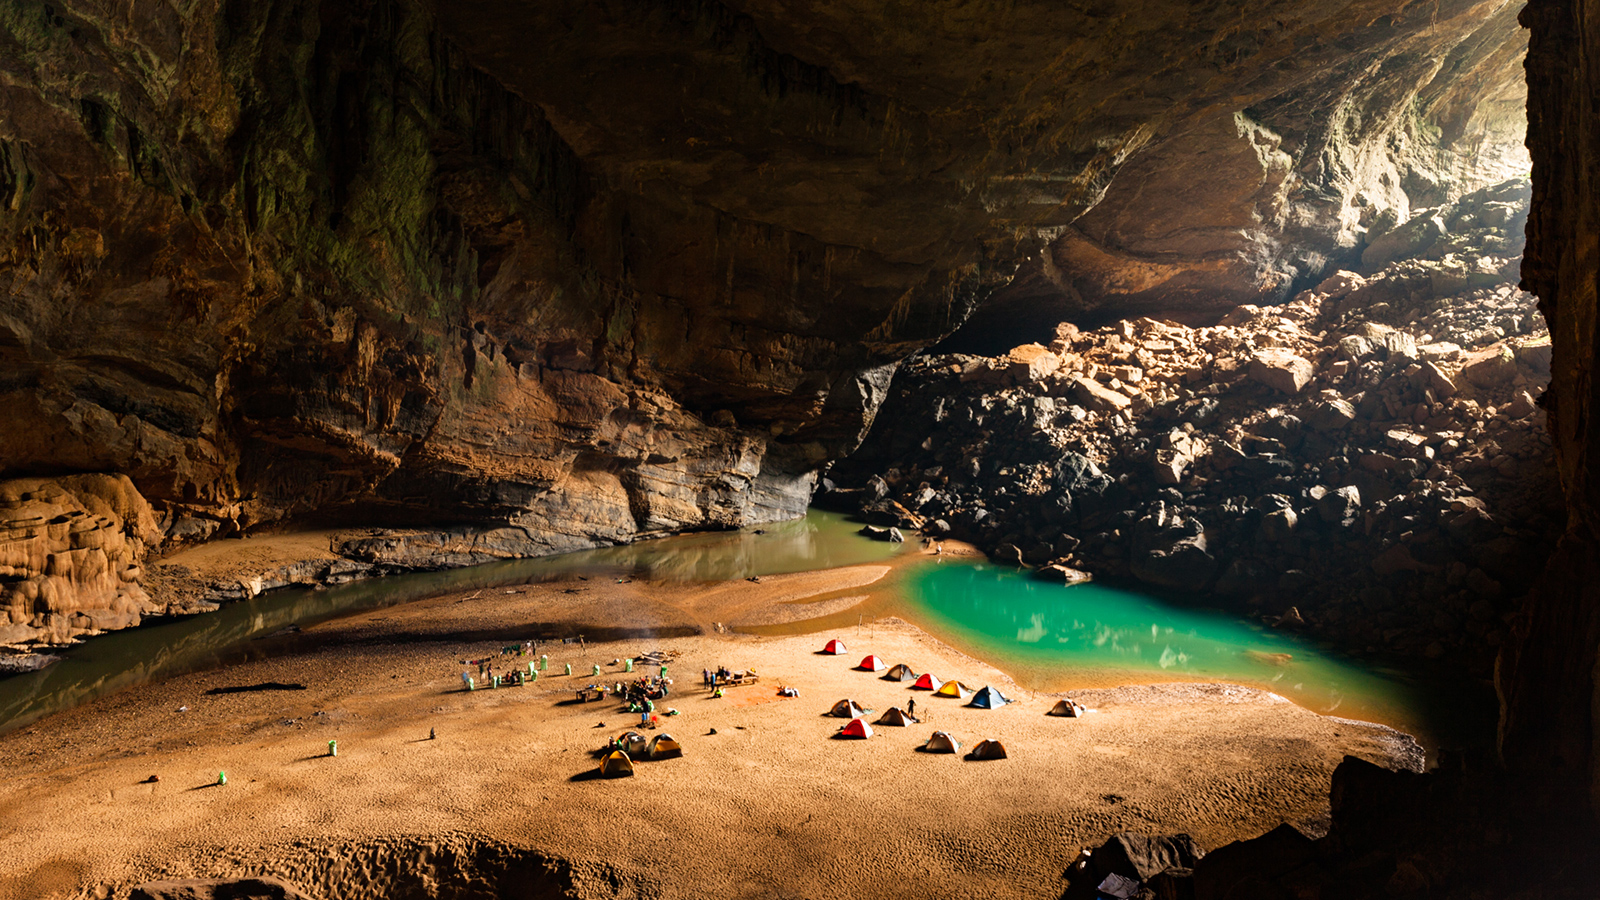 See world's largest cave, Hang Son Doong, in Vietnam | CNN Travel